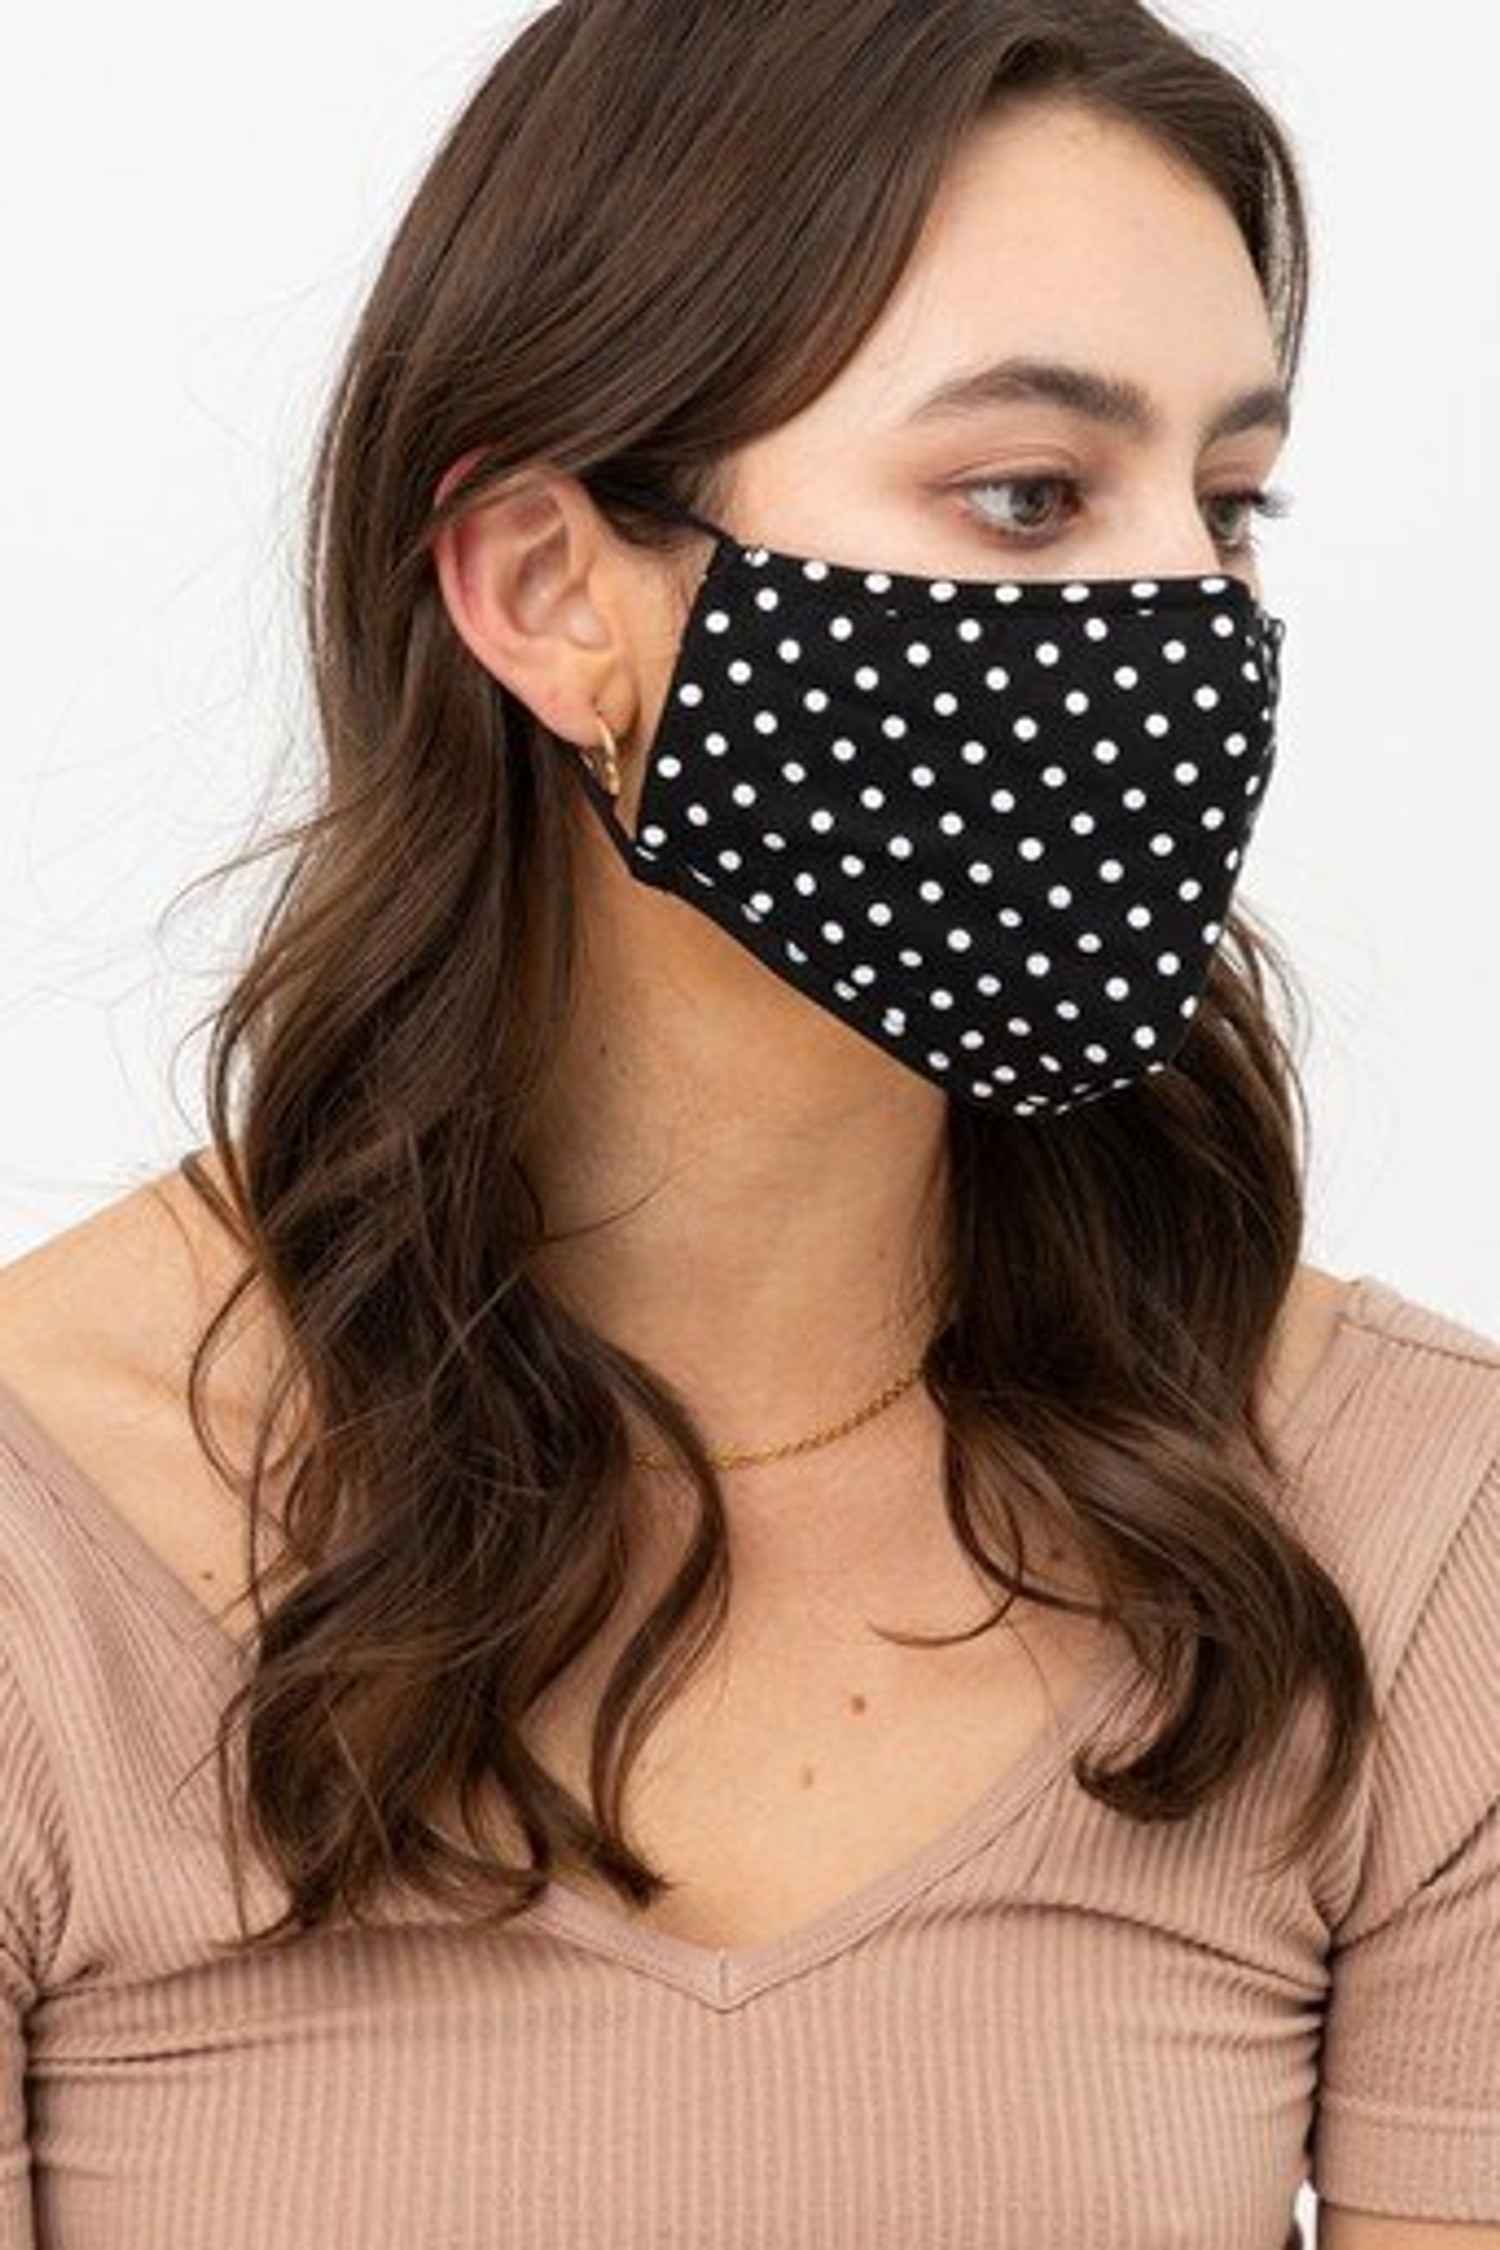 Black Polka Dot Fashion Face Mask with Built In Filter and Nose Bar